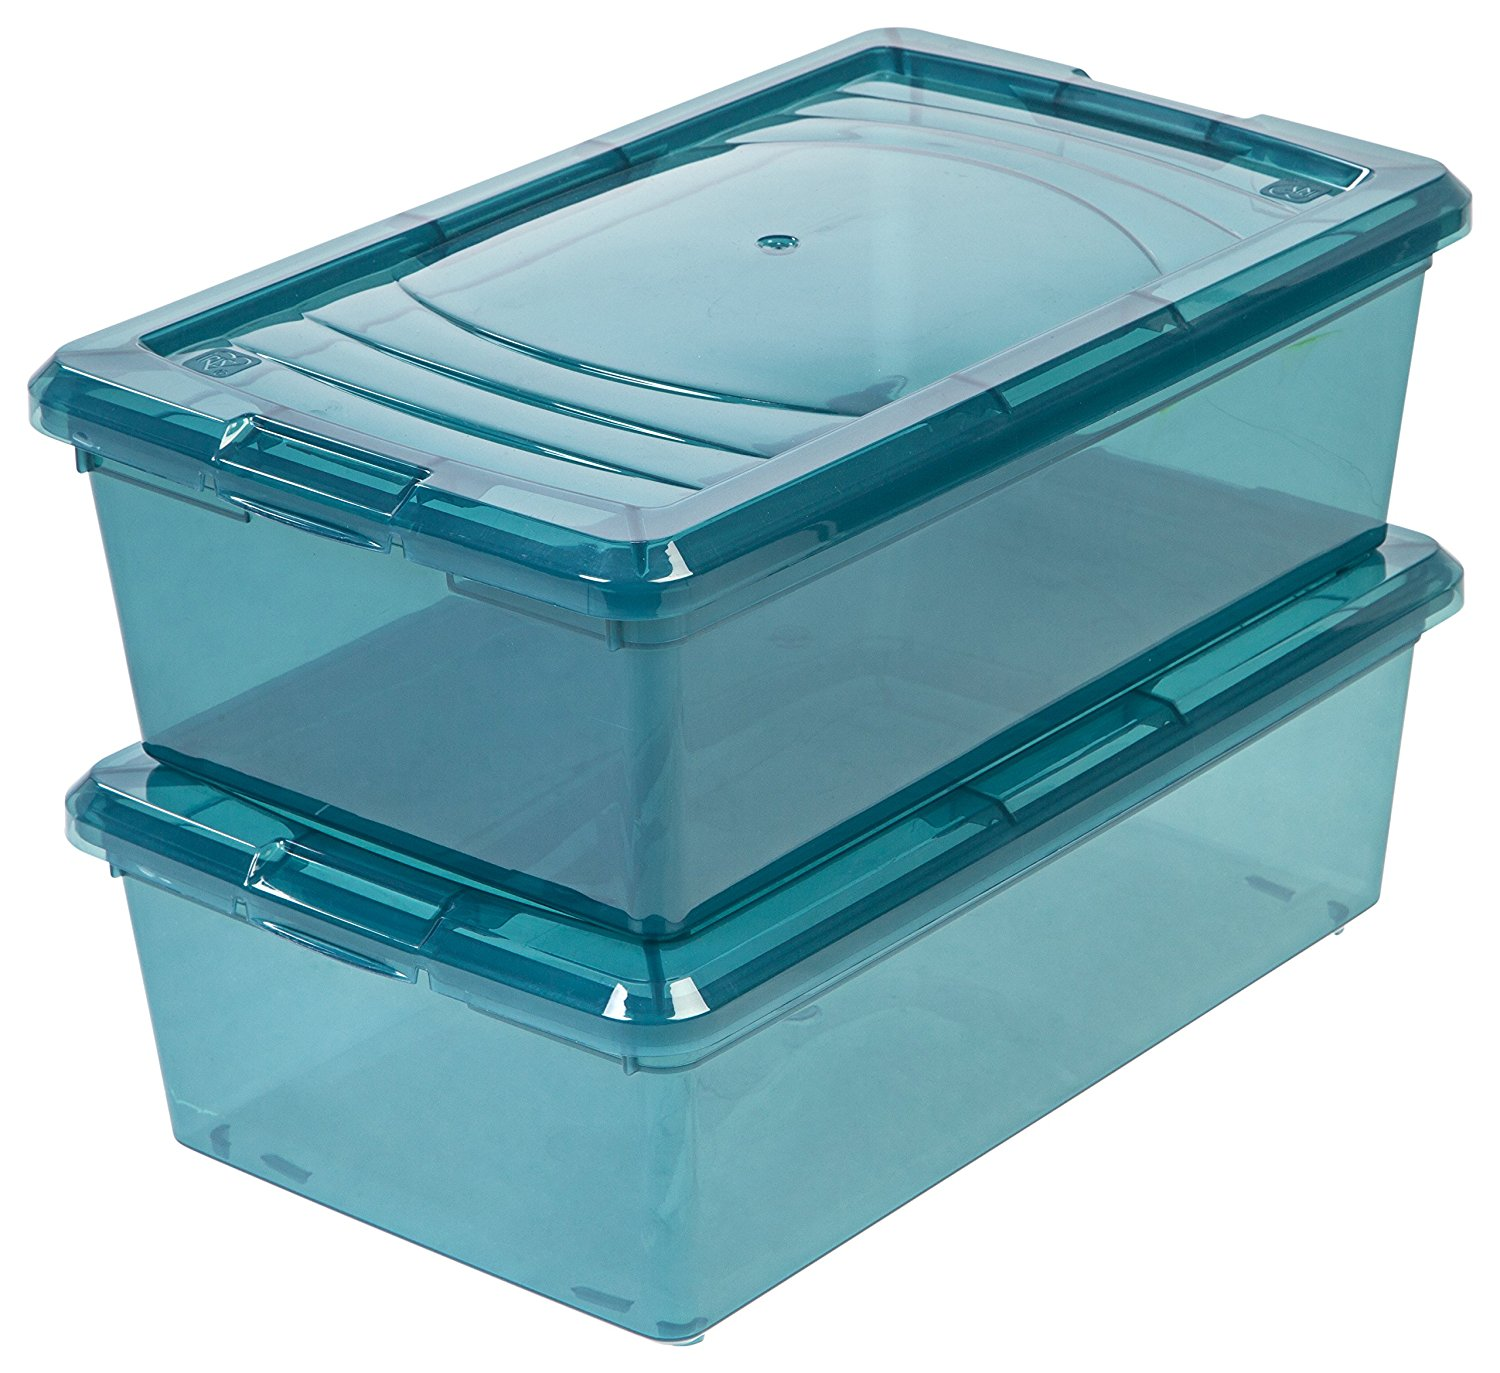 IRIS 34 Quart Deep Sweater Storage Box, 10 Pack, Clear